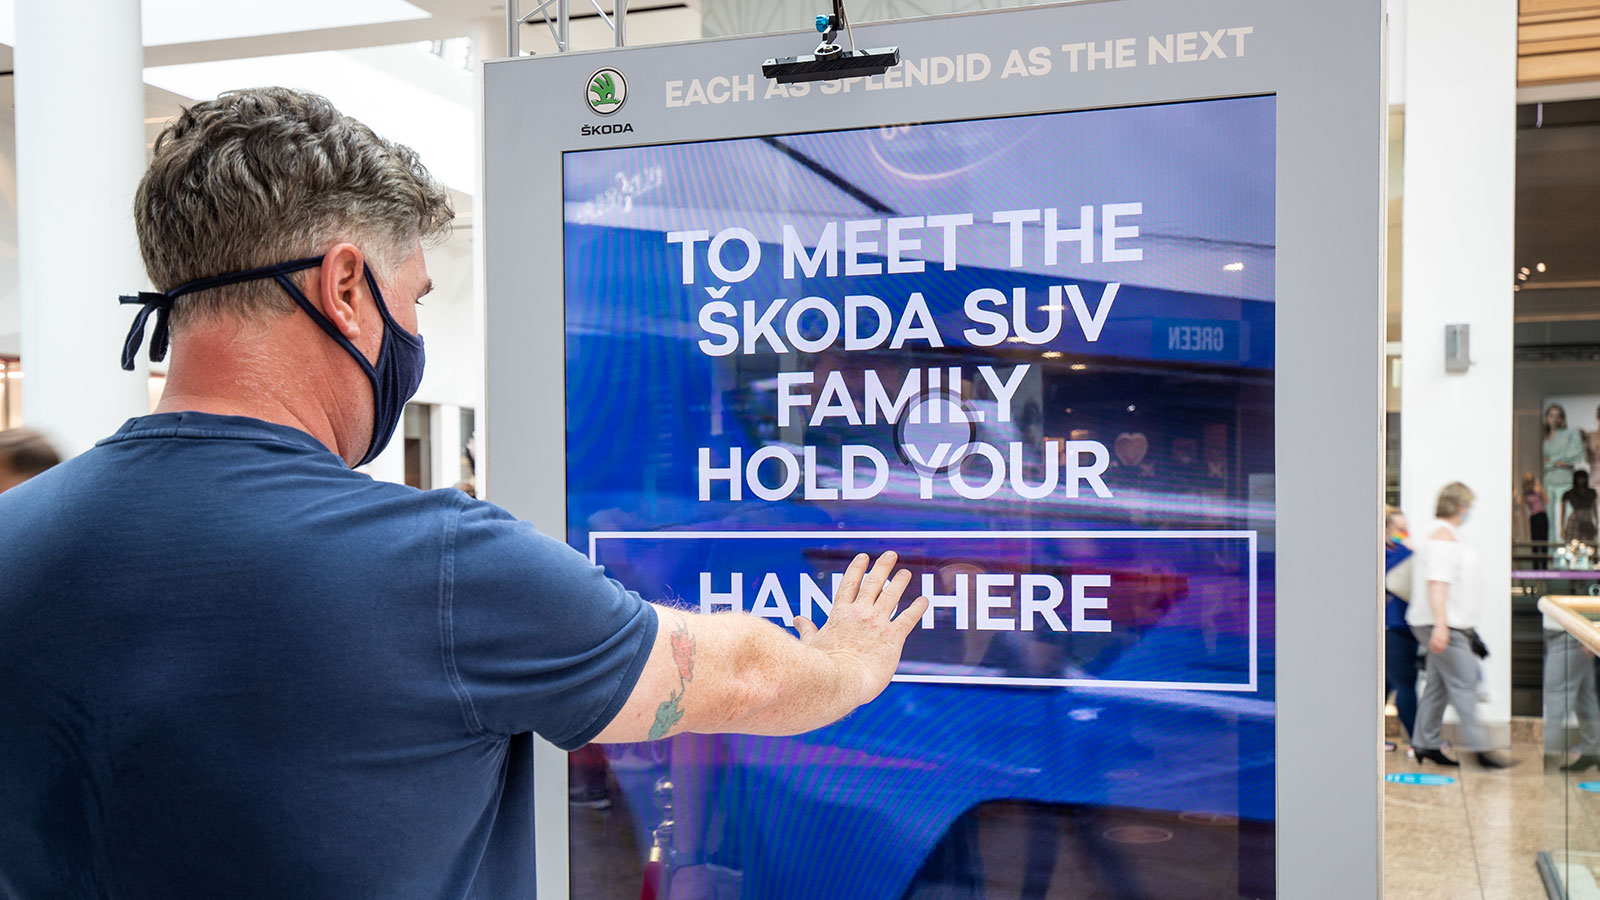 Skoda interactive digital out-of-home advertising screen with Ultraleap touchless technology